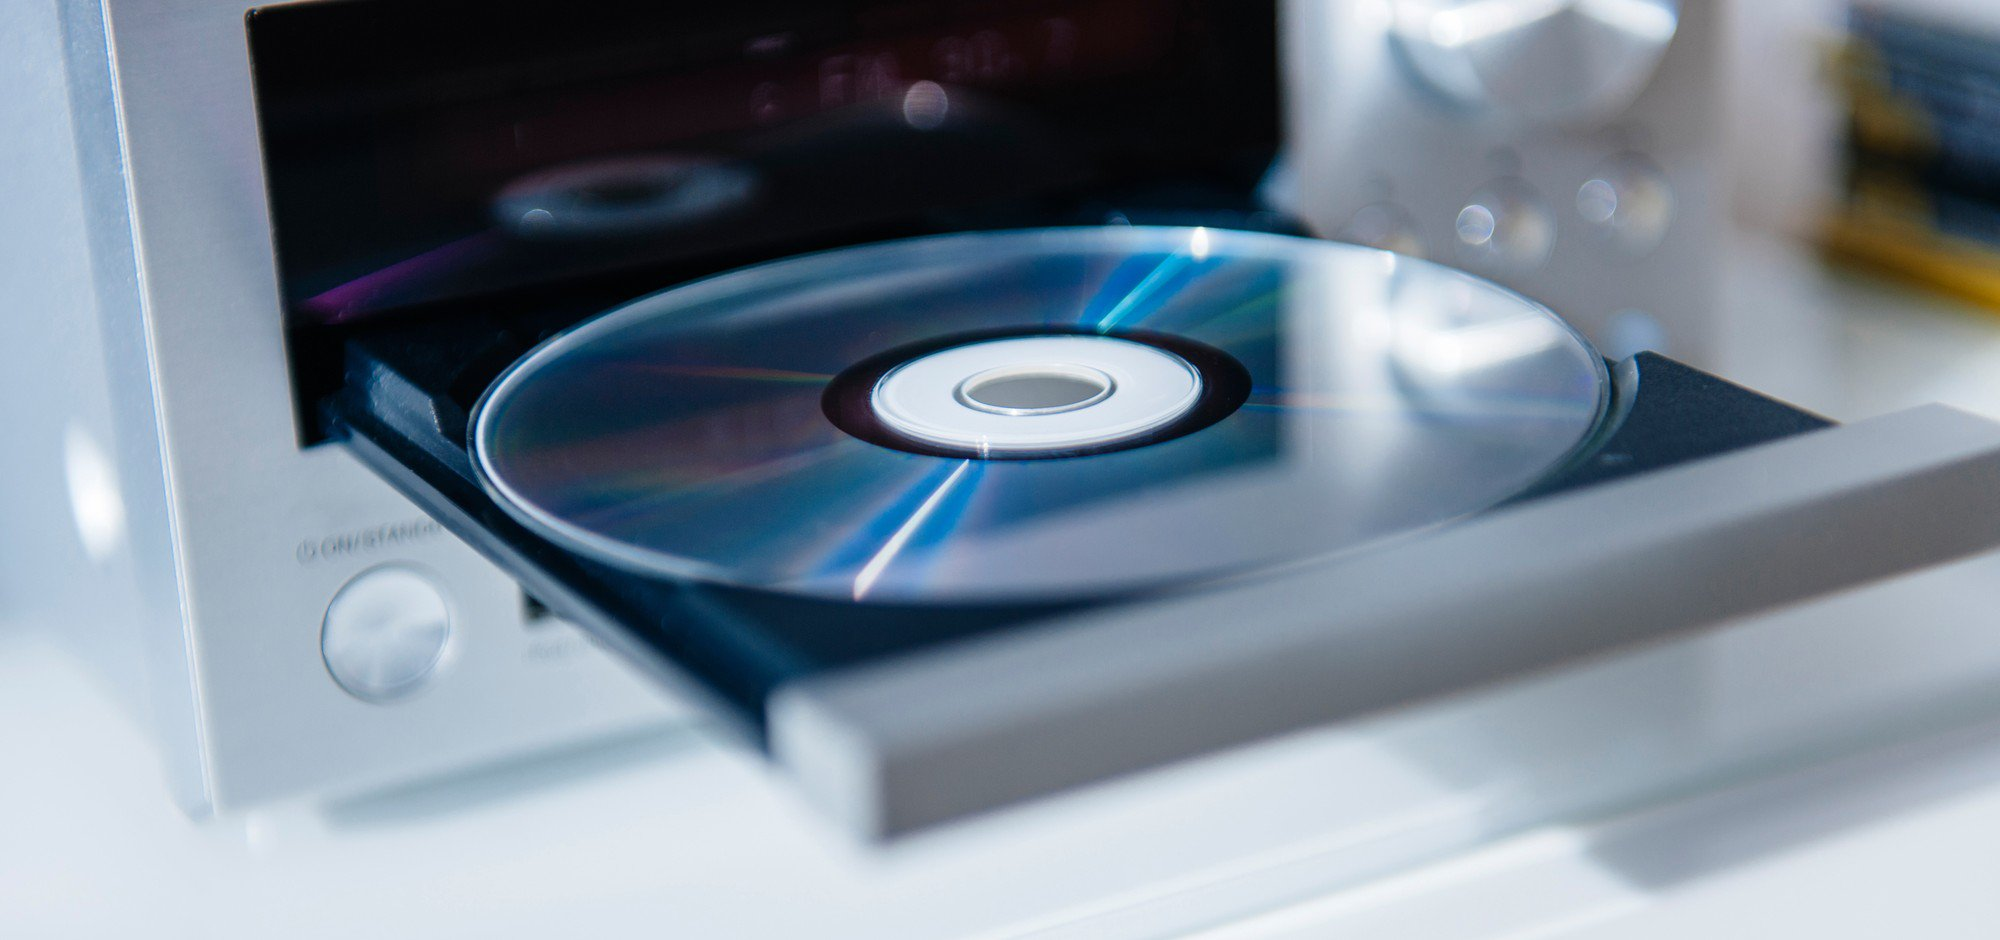 National CD Player Day - October 1